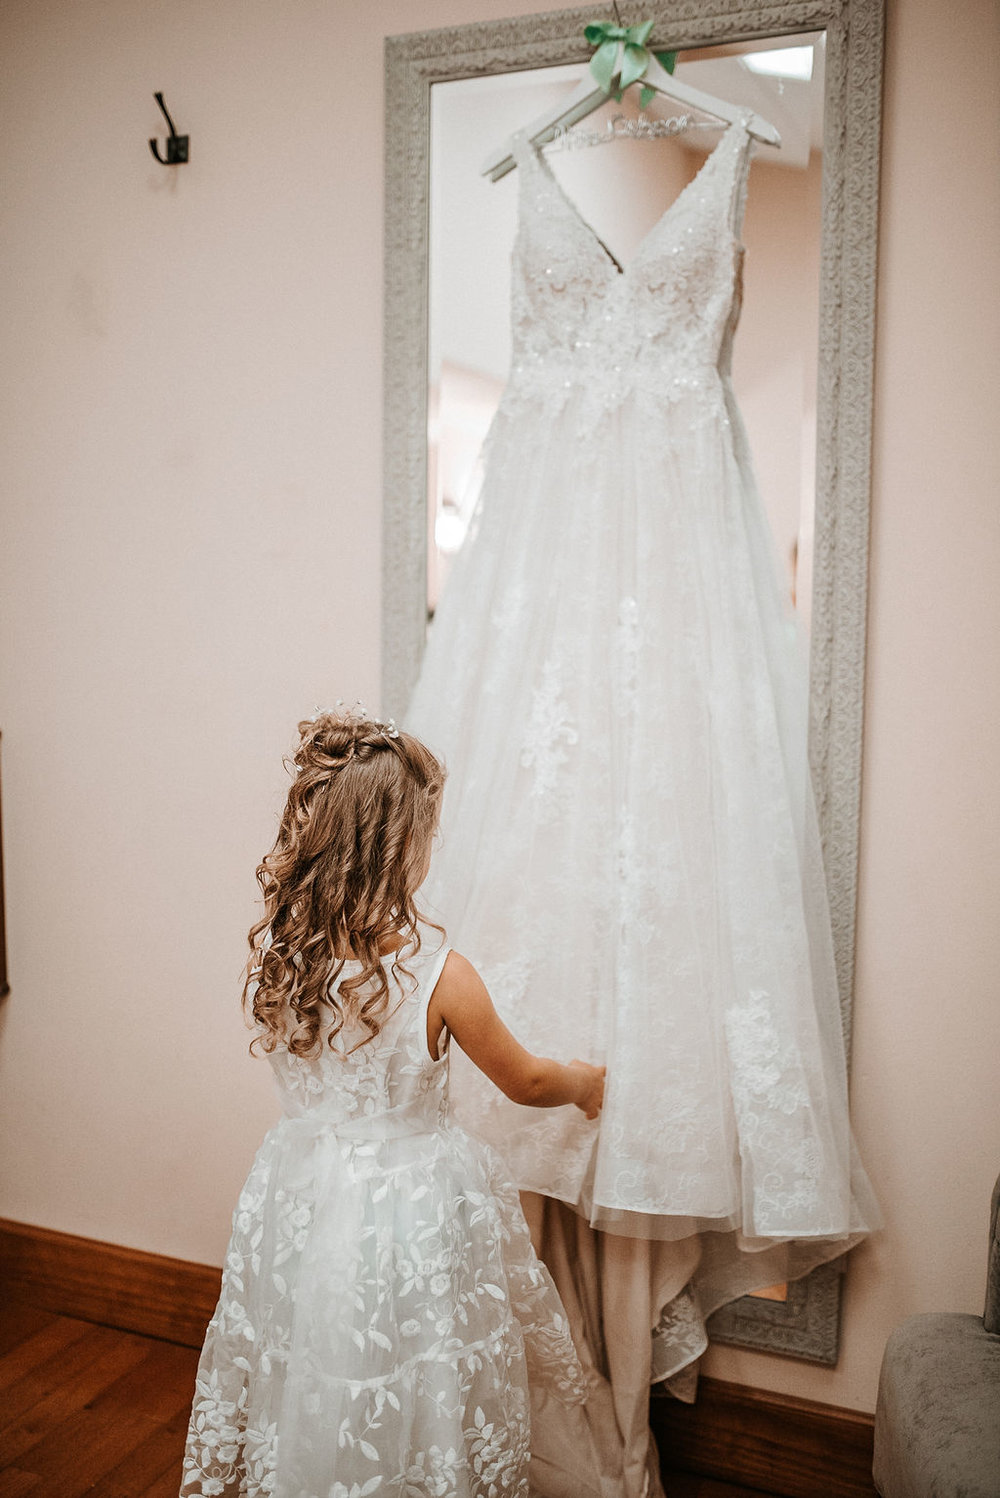 flower girl looking at bride's dress